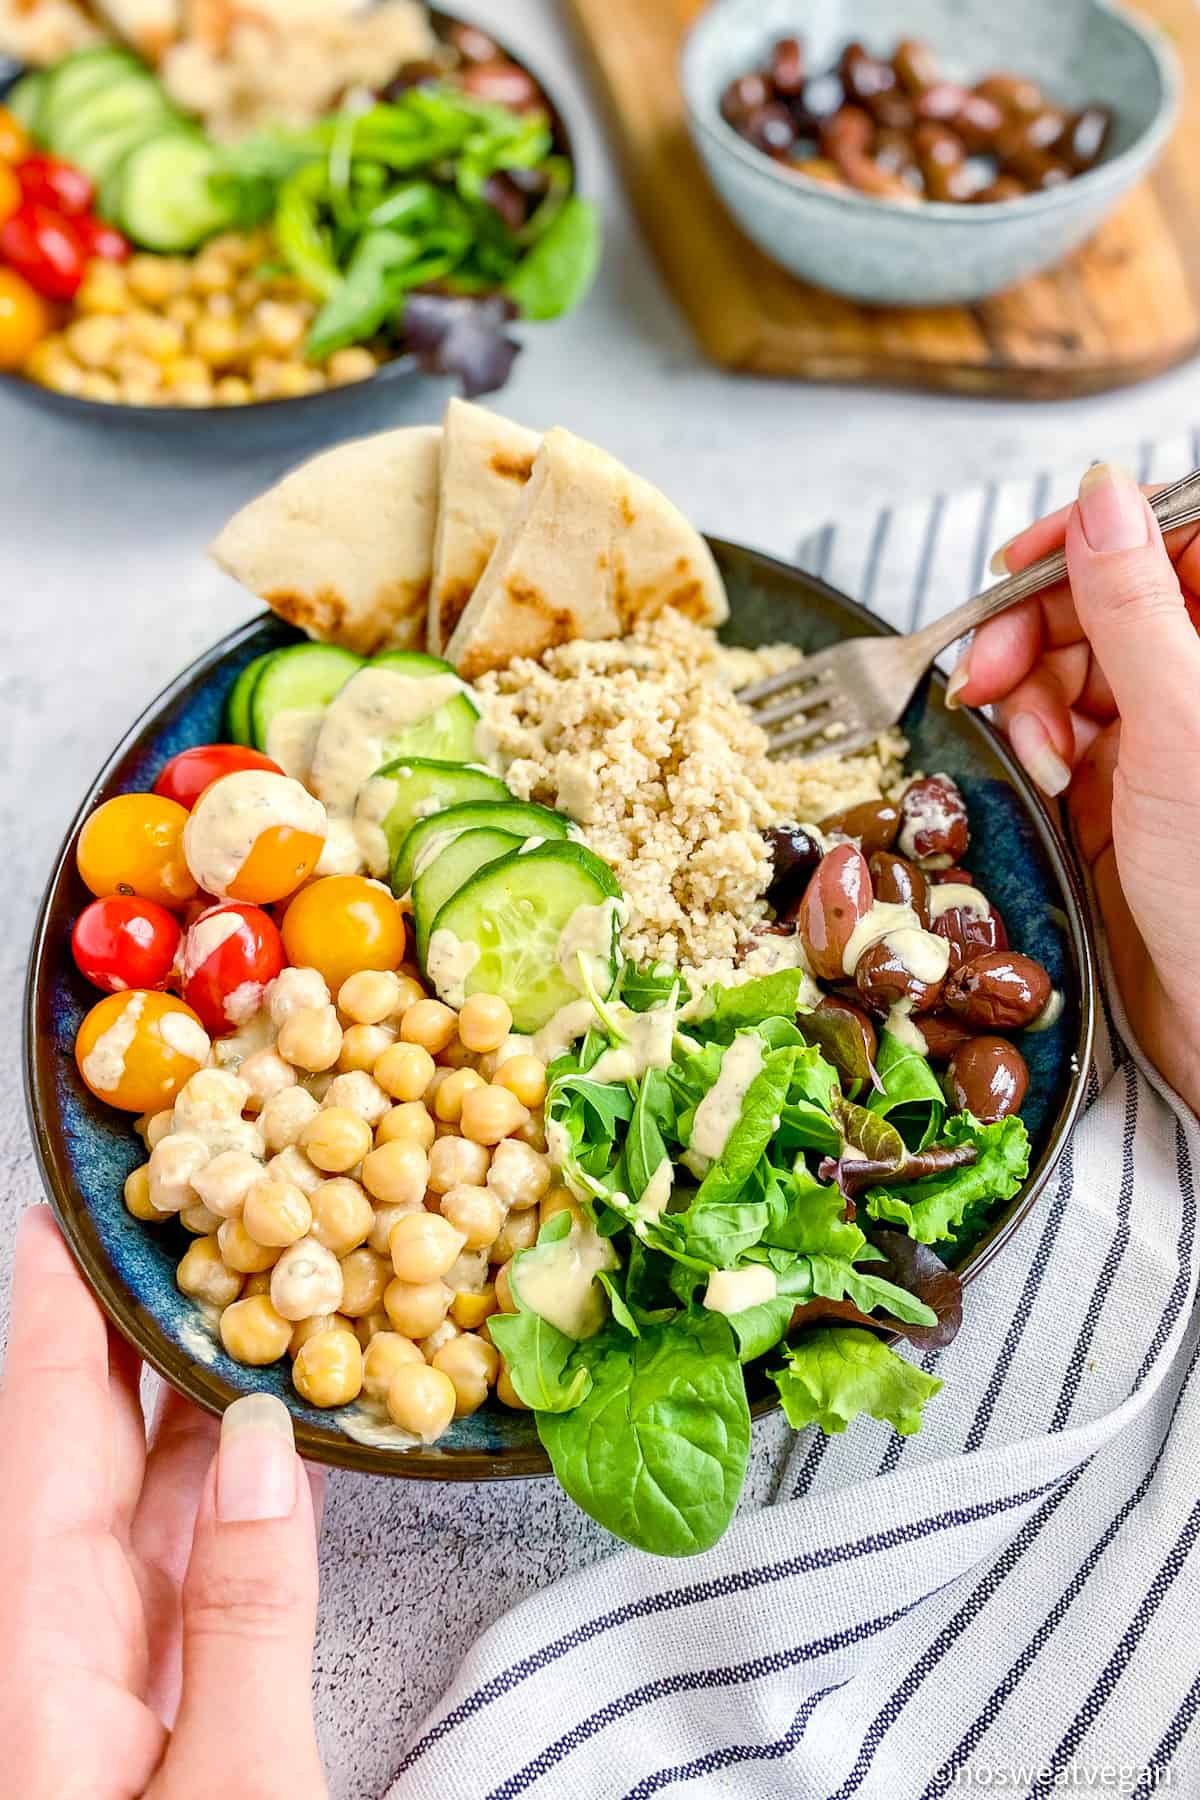 Hands holding chickpea couscous bowl.